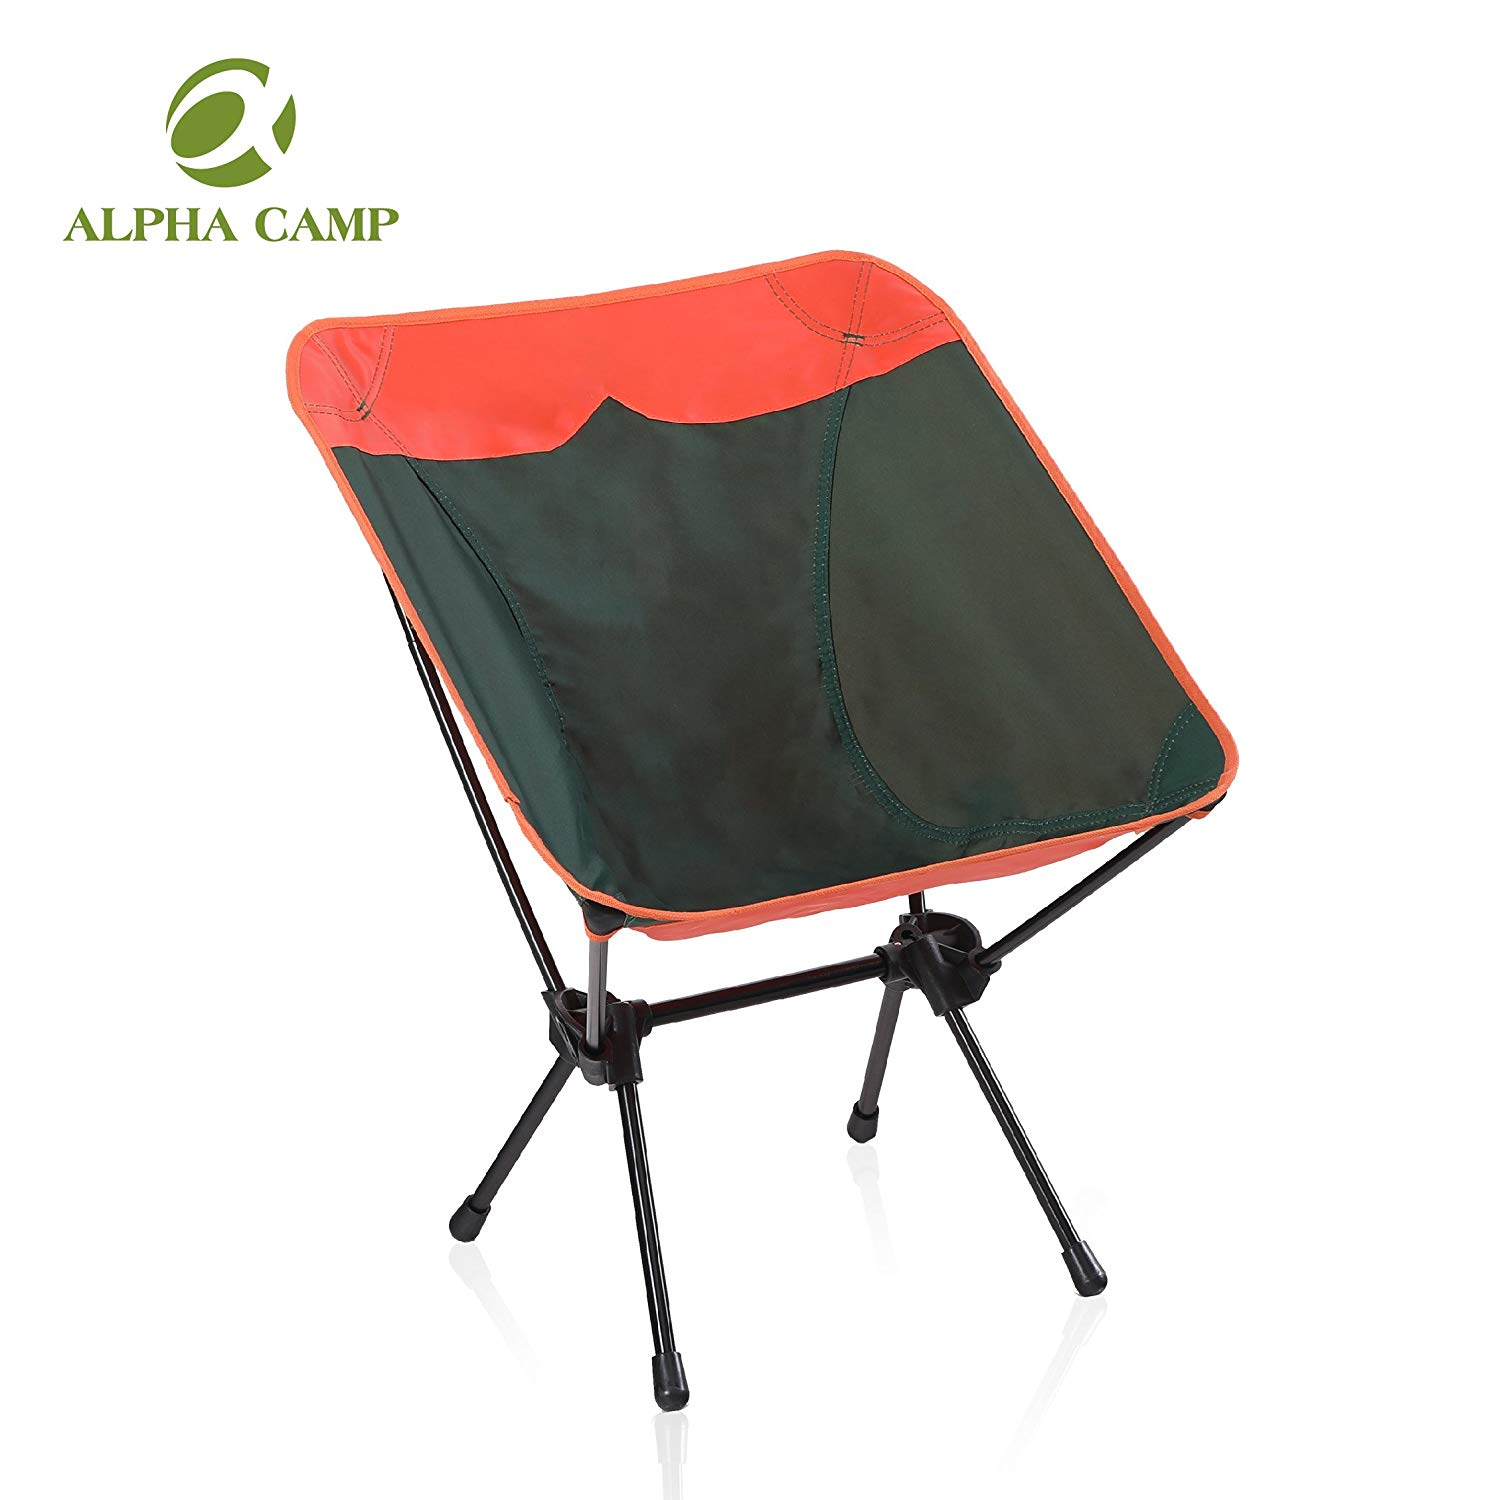 Double Camping Chair Top 10 Best Camping Chairs 2018 Review